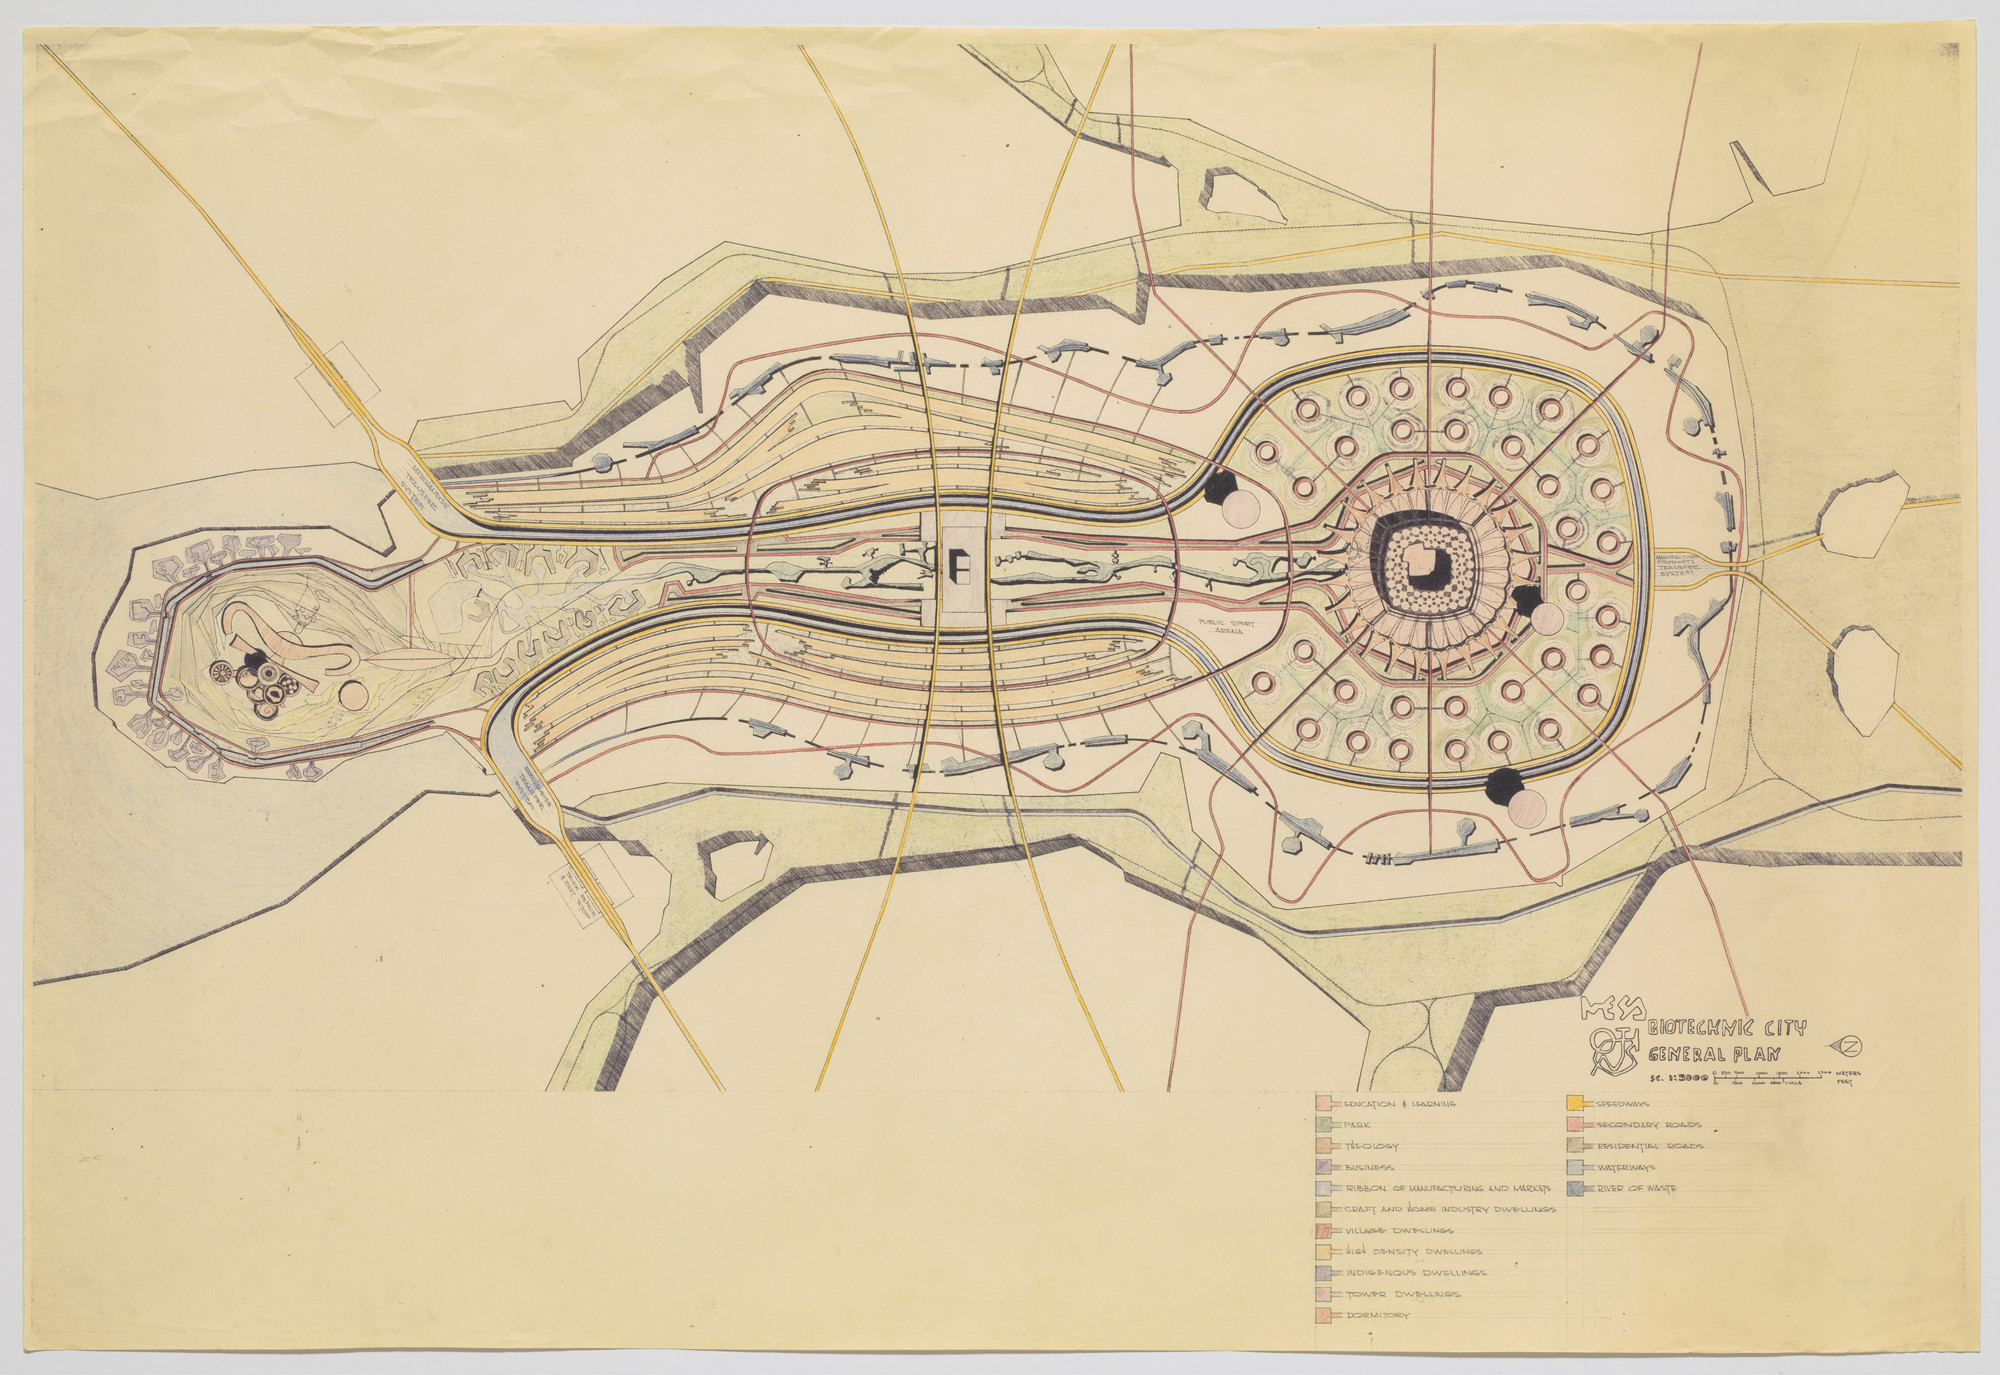 Paolo Soleri. Mesa City Project, Plan. 1960